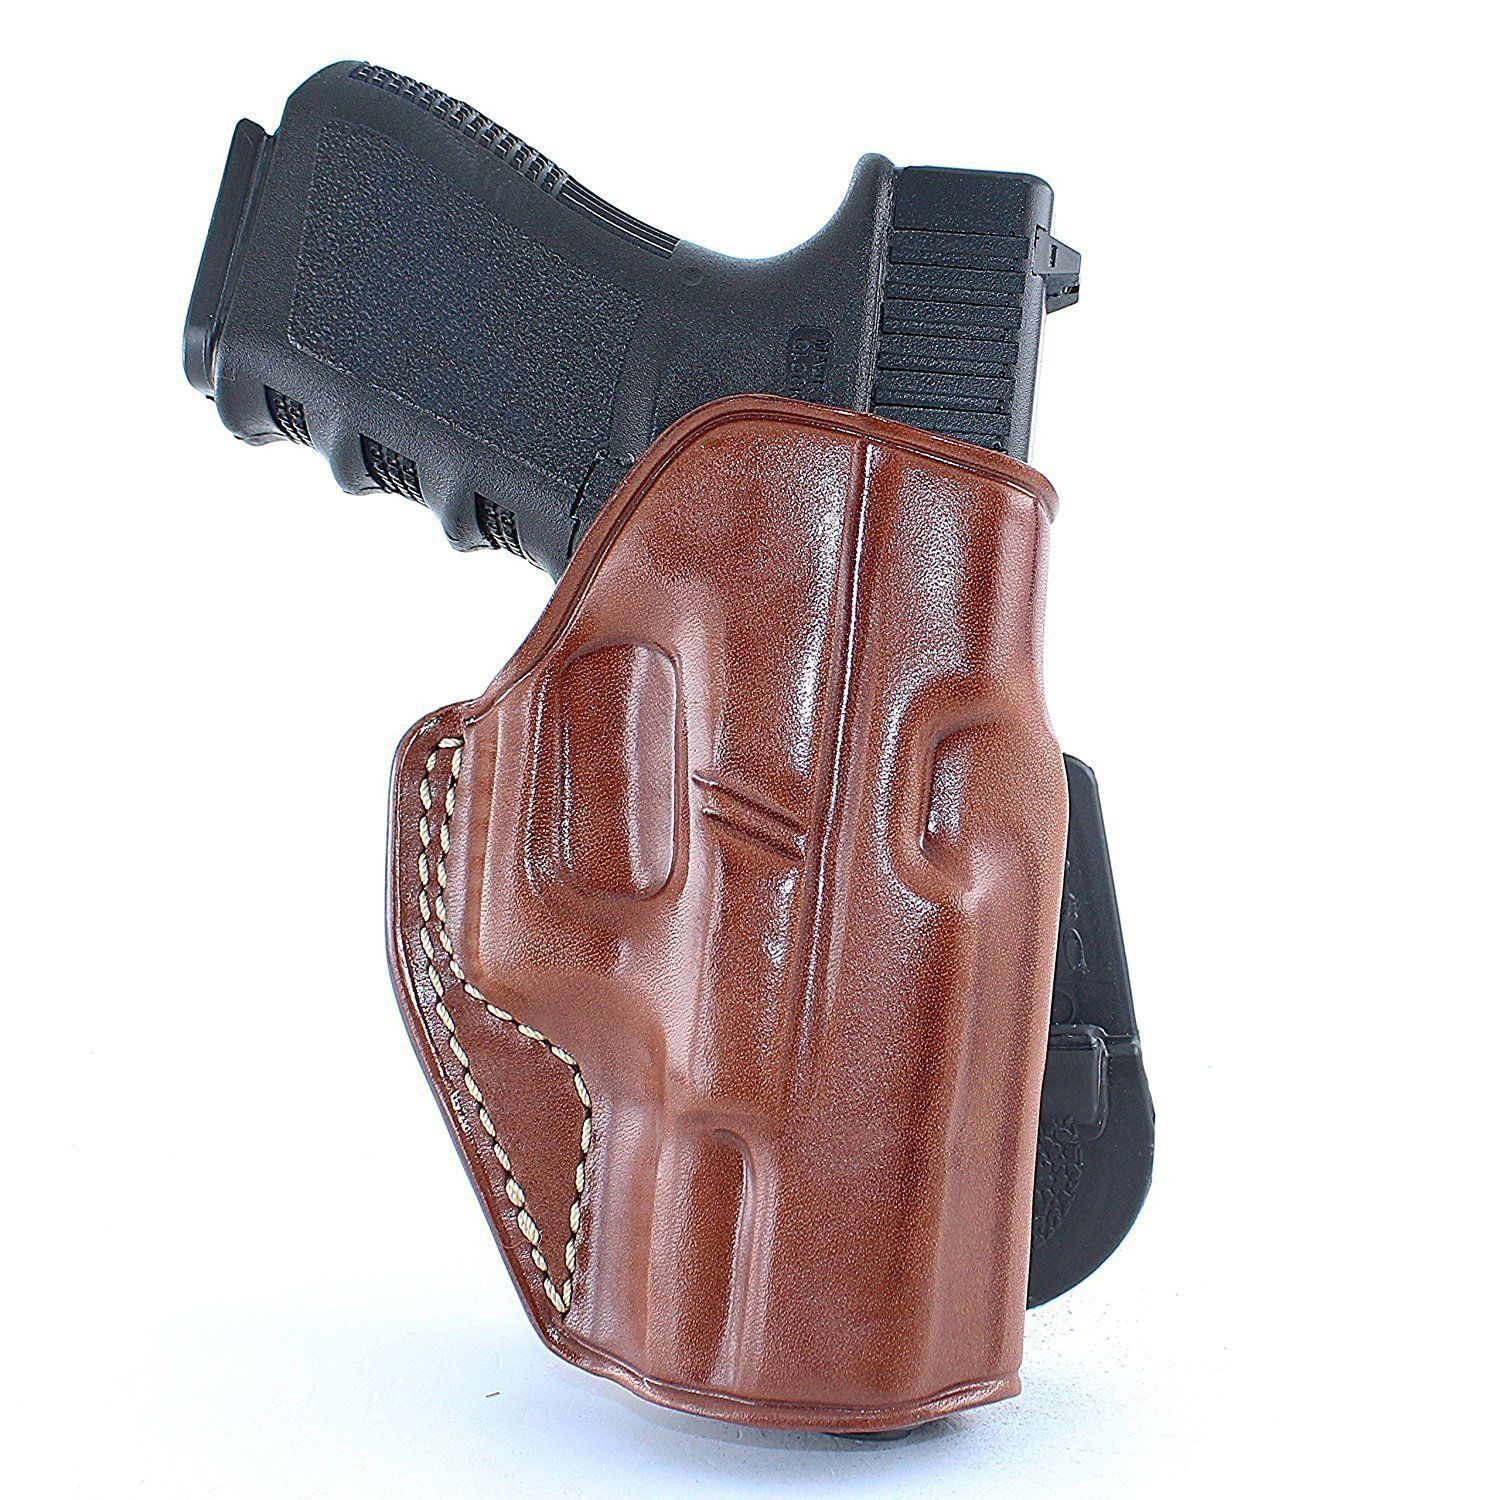 Masc Owb Holster For Girsan Mc 14 Mc28 Sa and 27 similar items